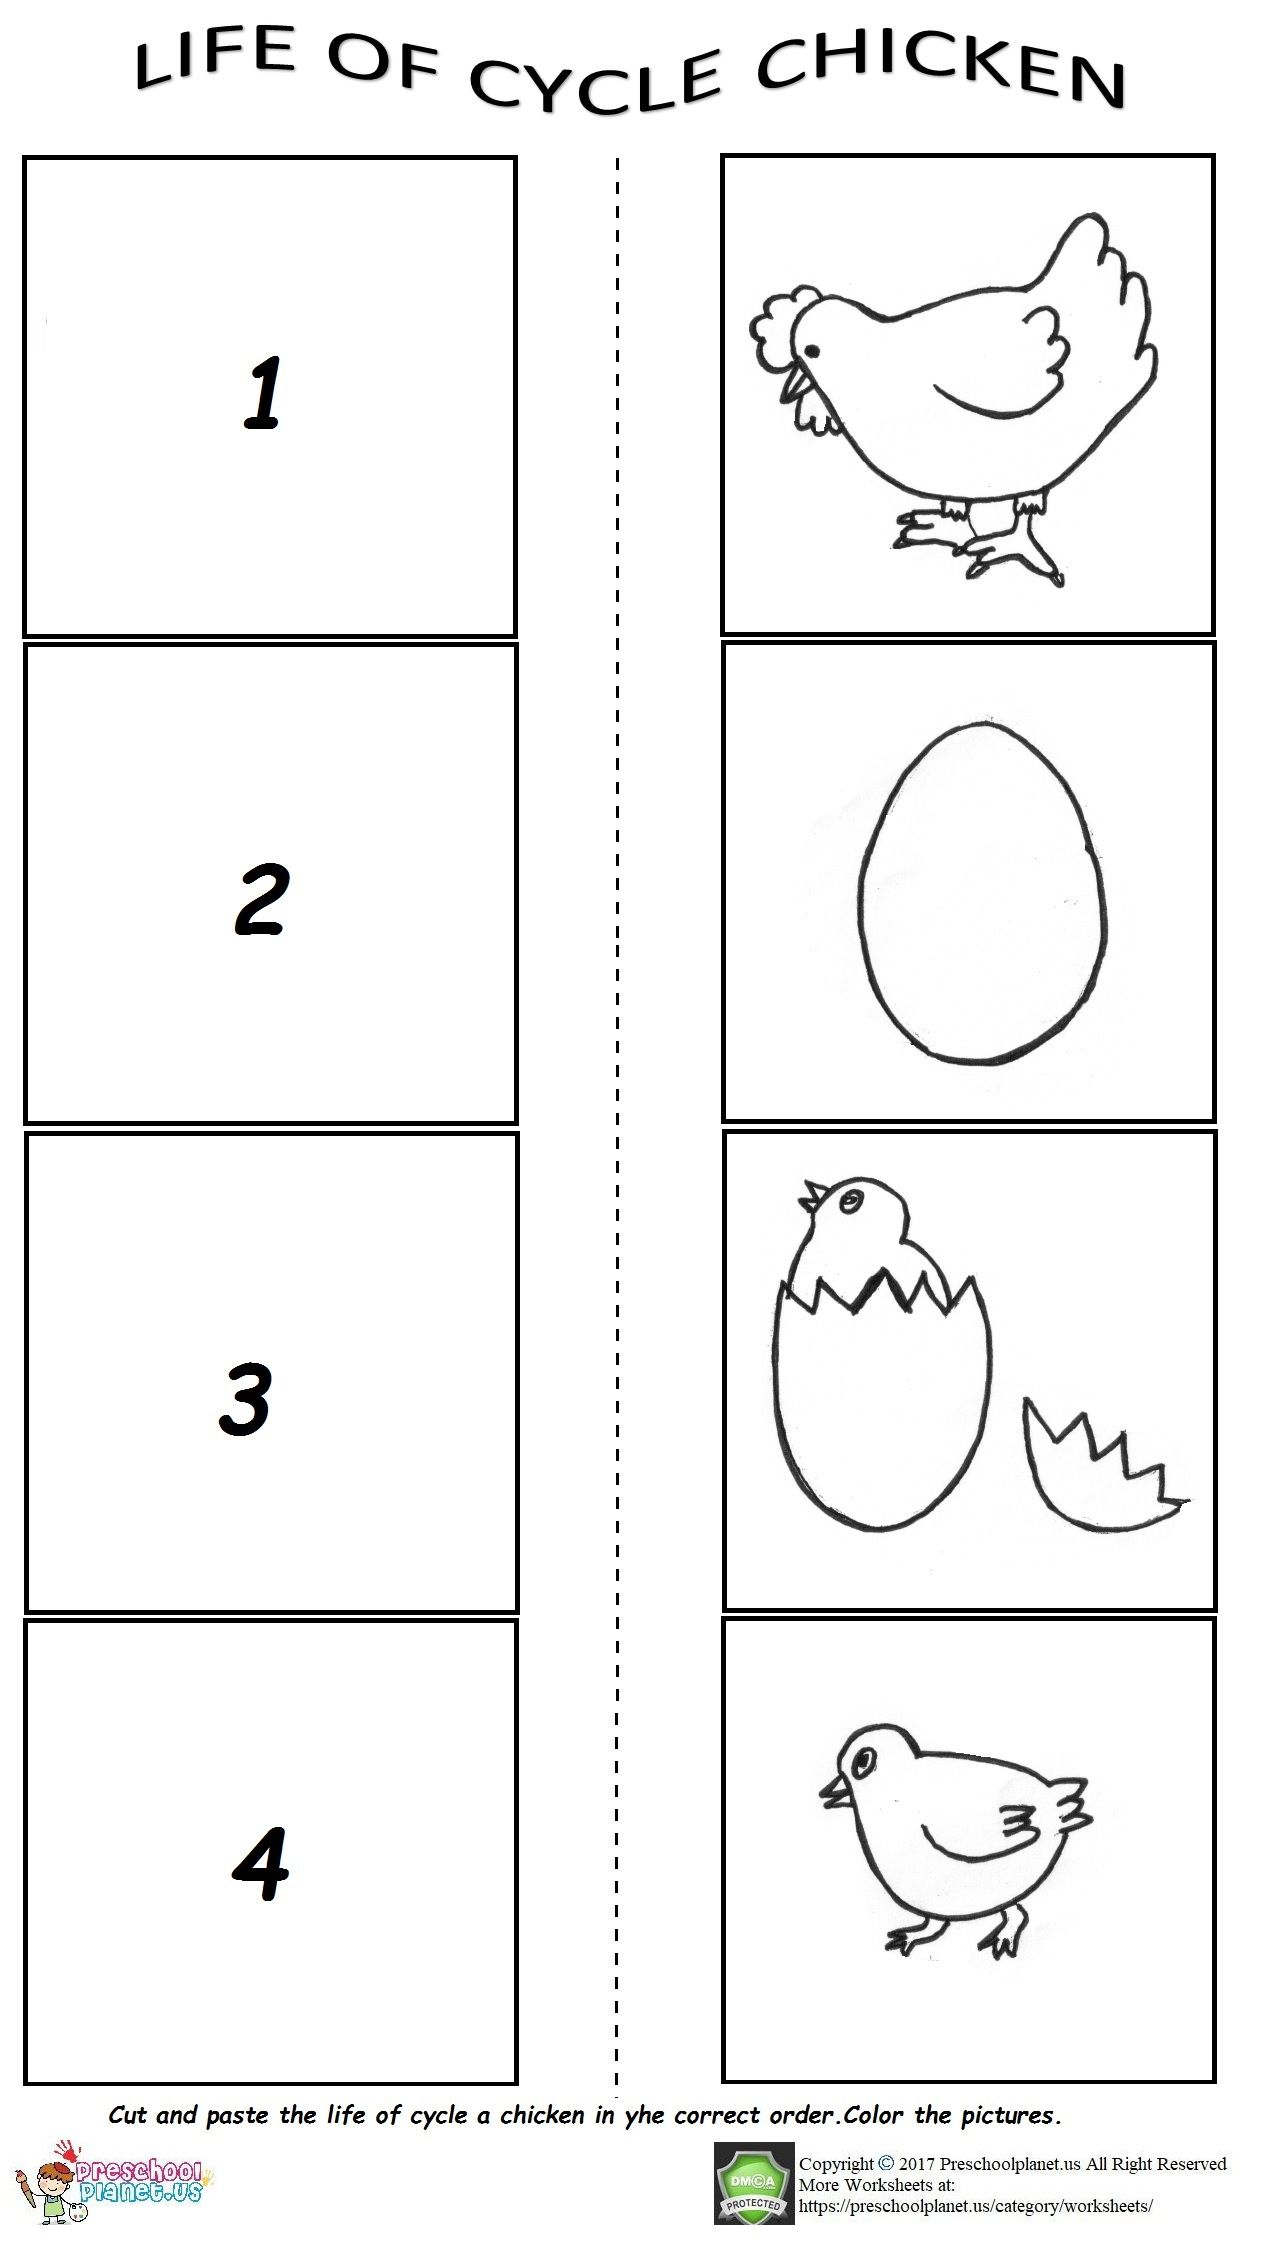 Worksheets The Mailbox Worksheets pin by preschoolplanet us on worksheet for kids pinterest art worksheets preschool language arts apple theme pre school the mailbox fruit olay search